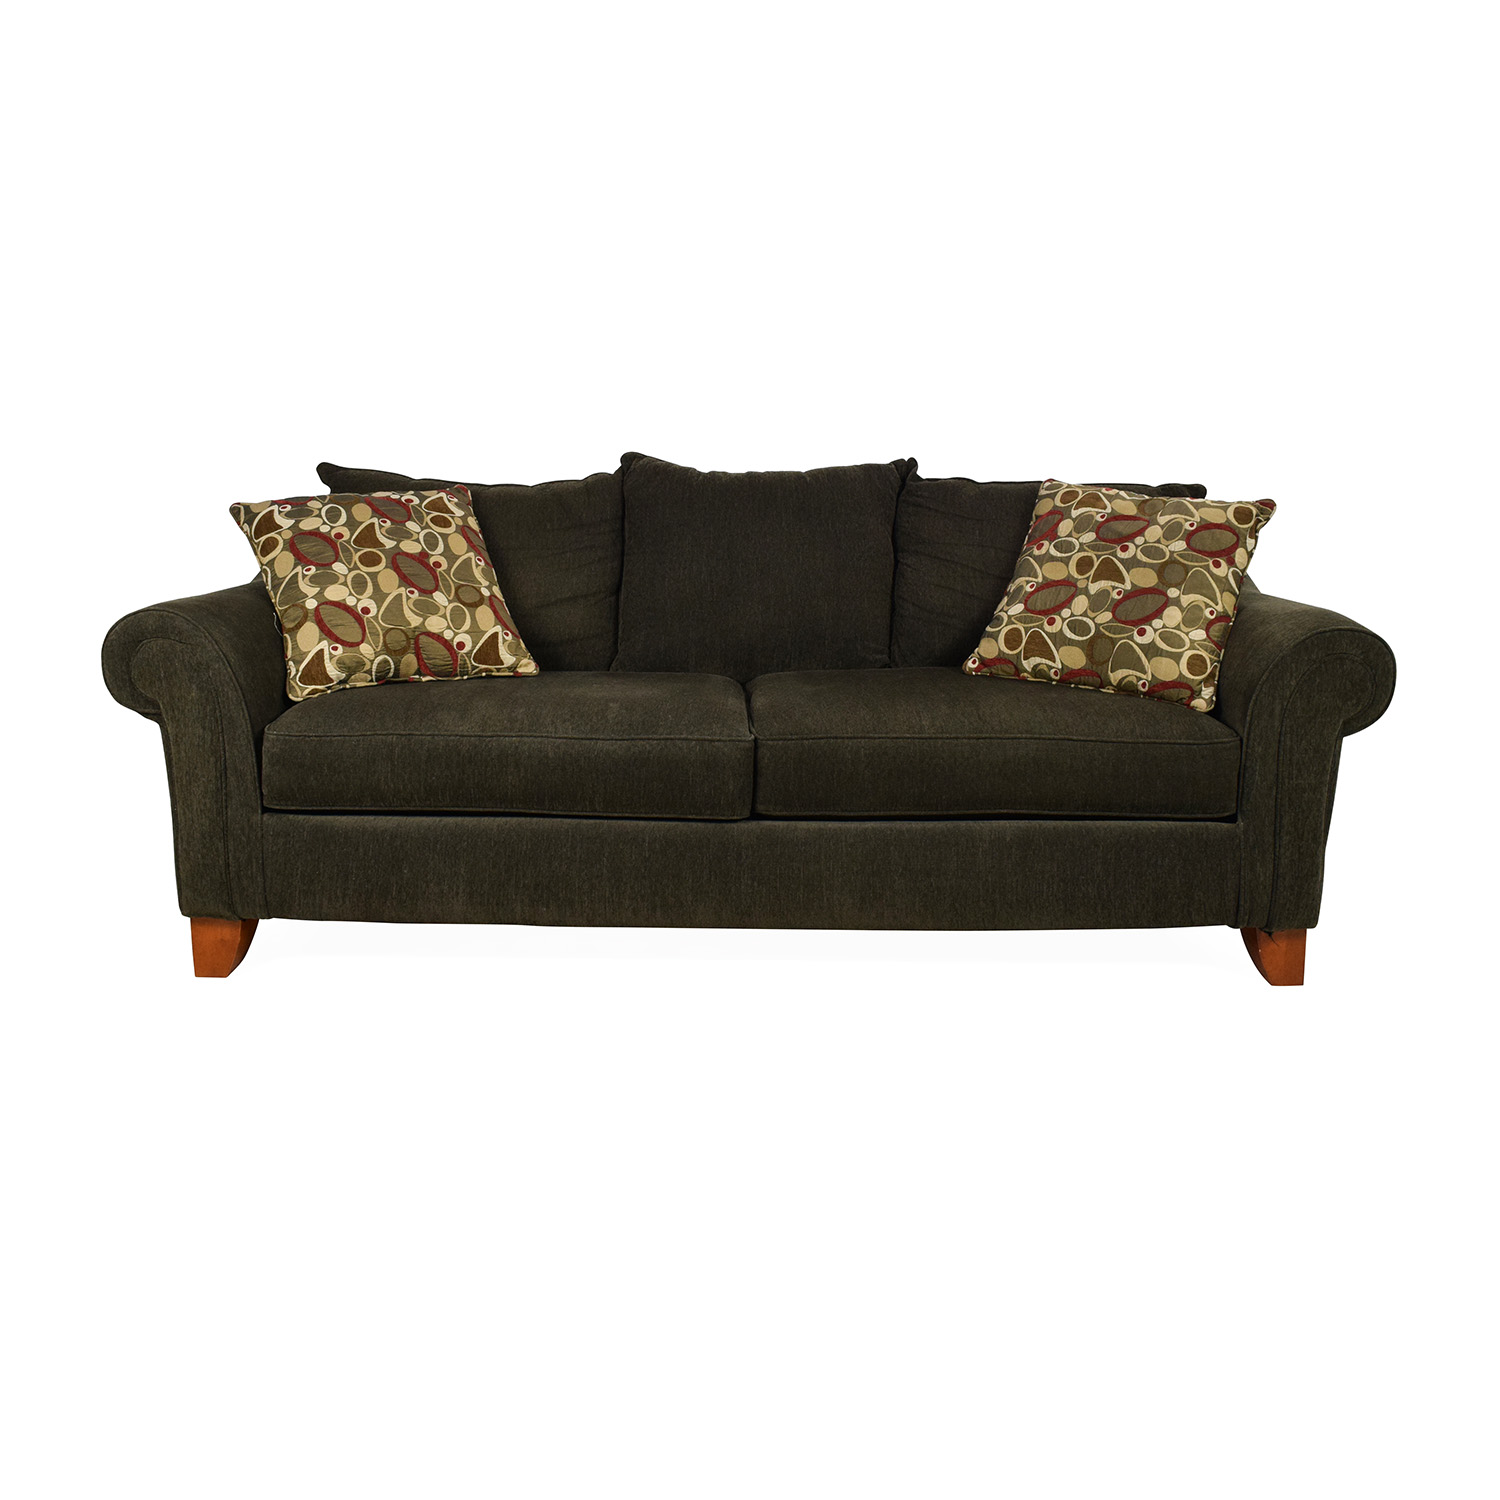 Raymour and Flanigan Raymour & Flanigan Molly Chenille Sofa Classic Sofas